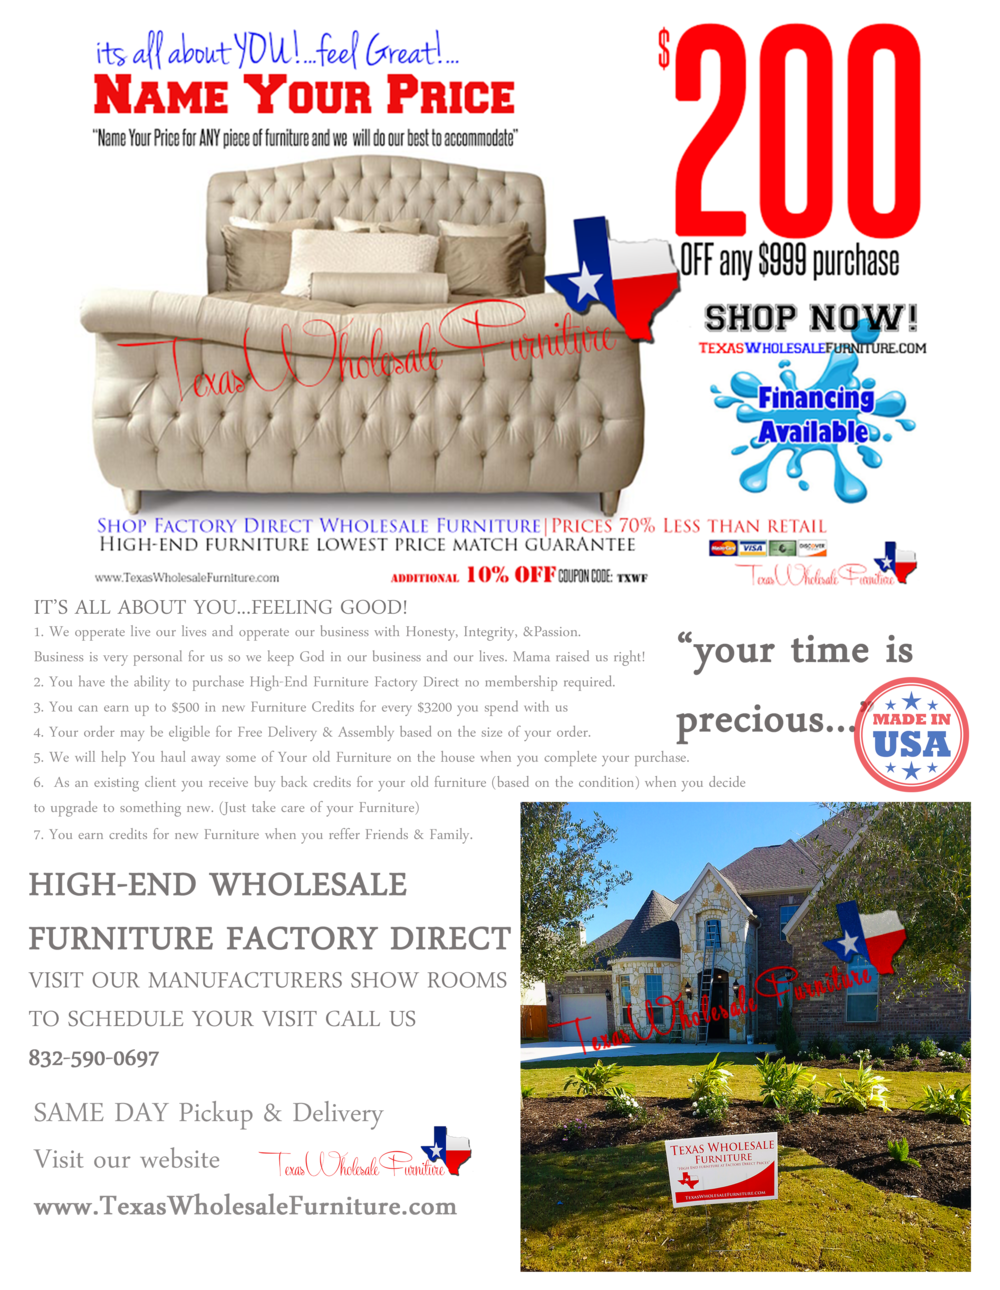 Why Buy Texas Wholesale Furniture?